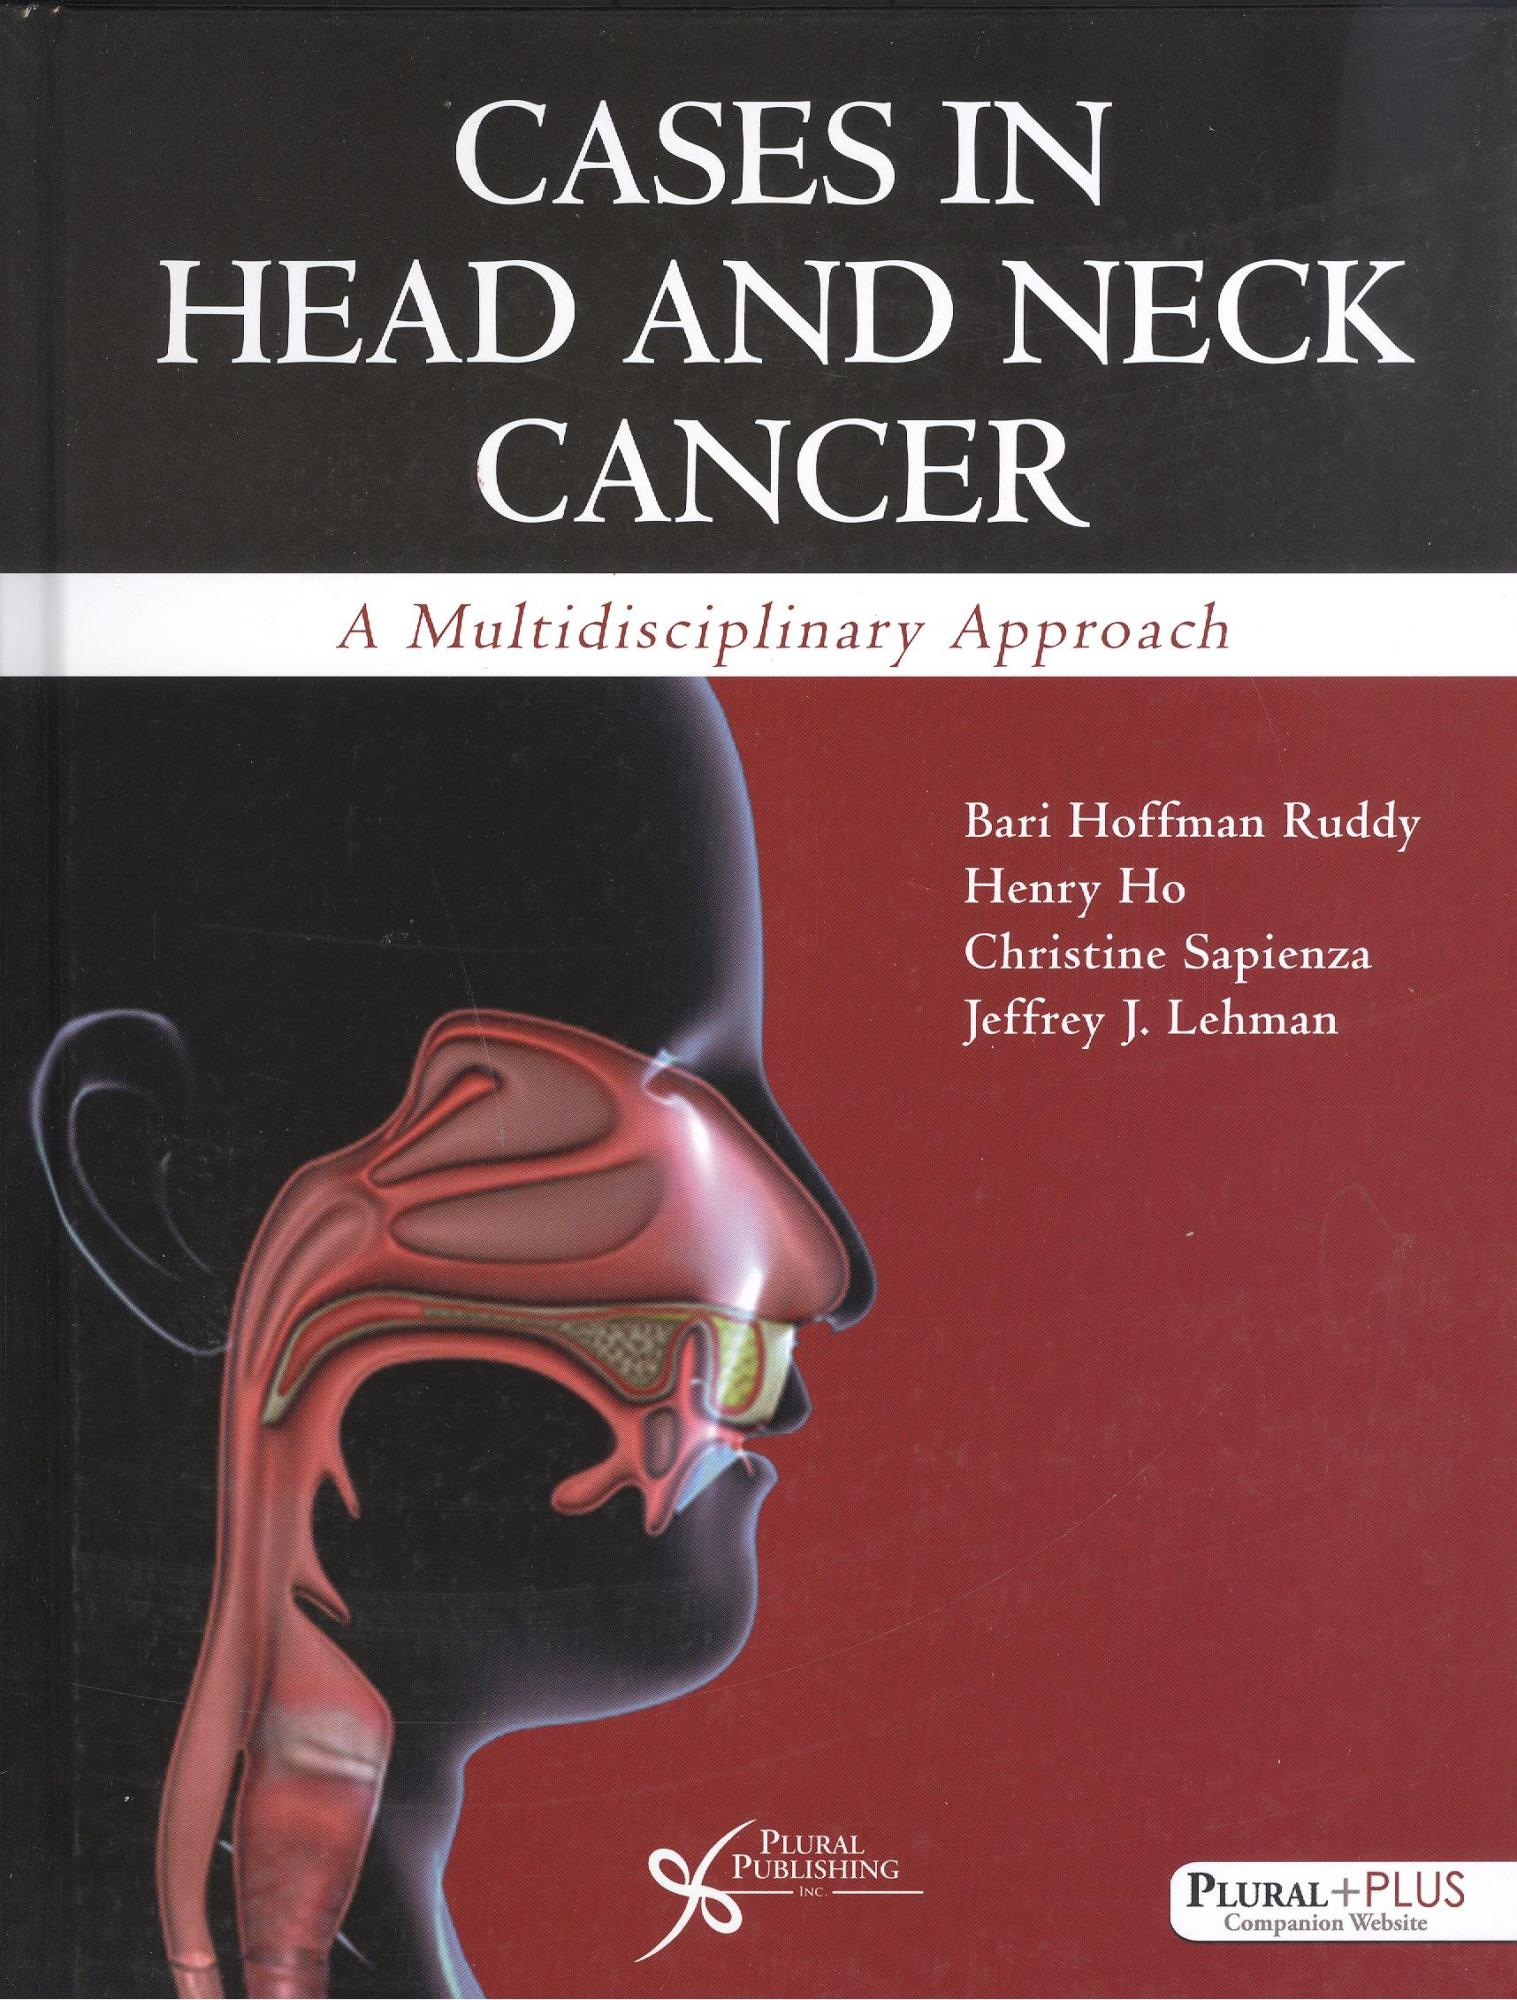 Cases in Head and Neck Cancer: A Multidisciplinary Approach